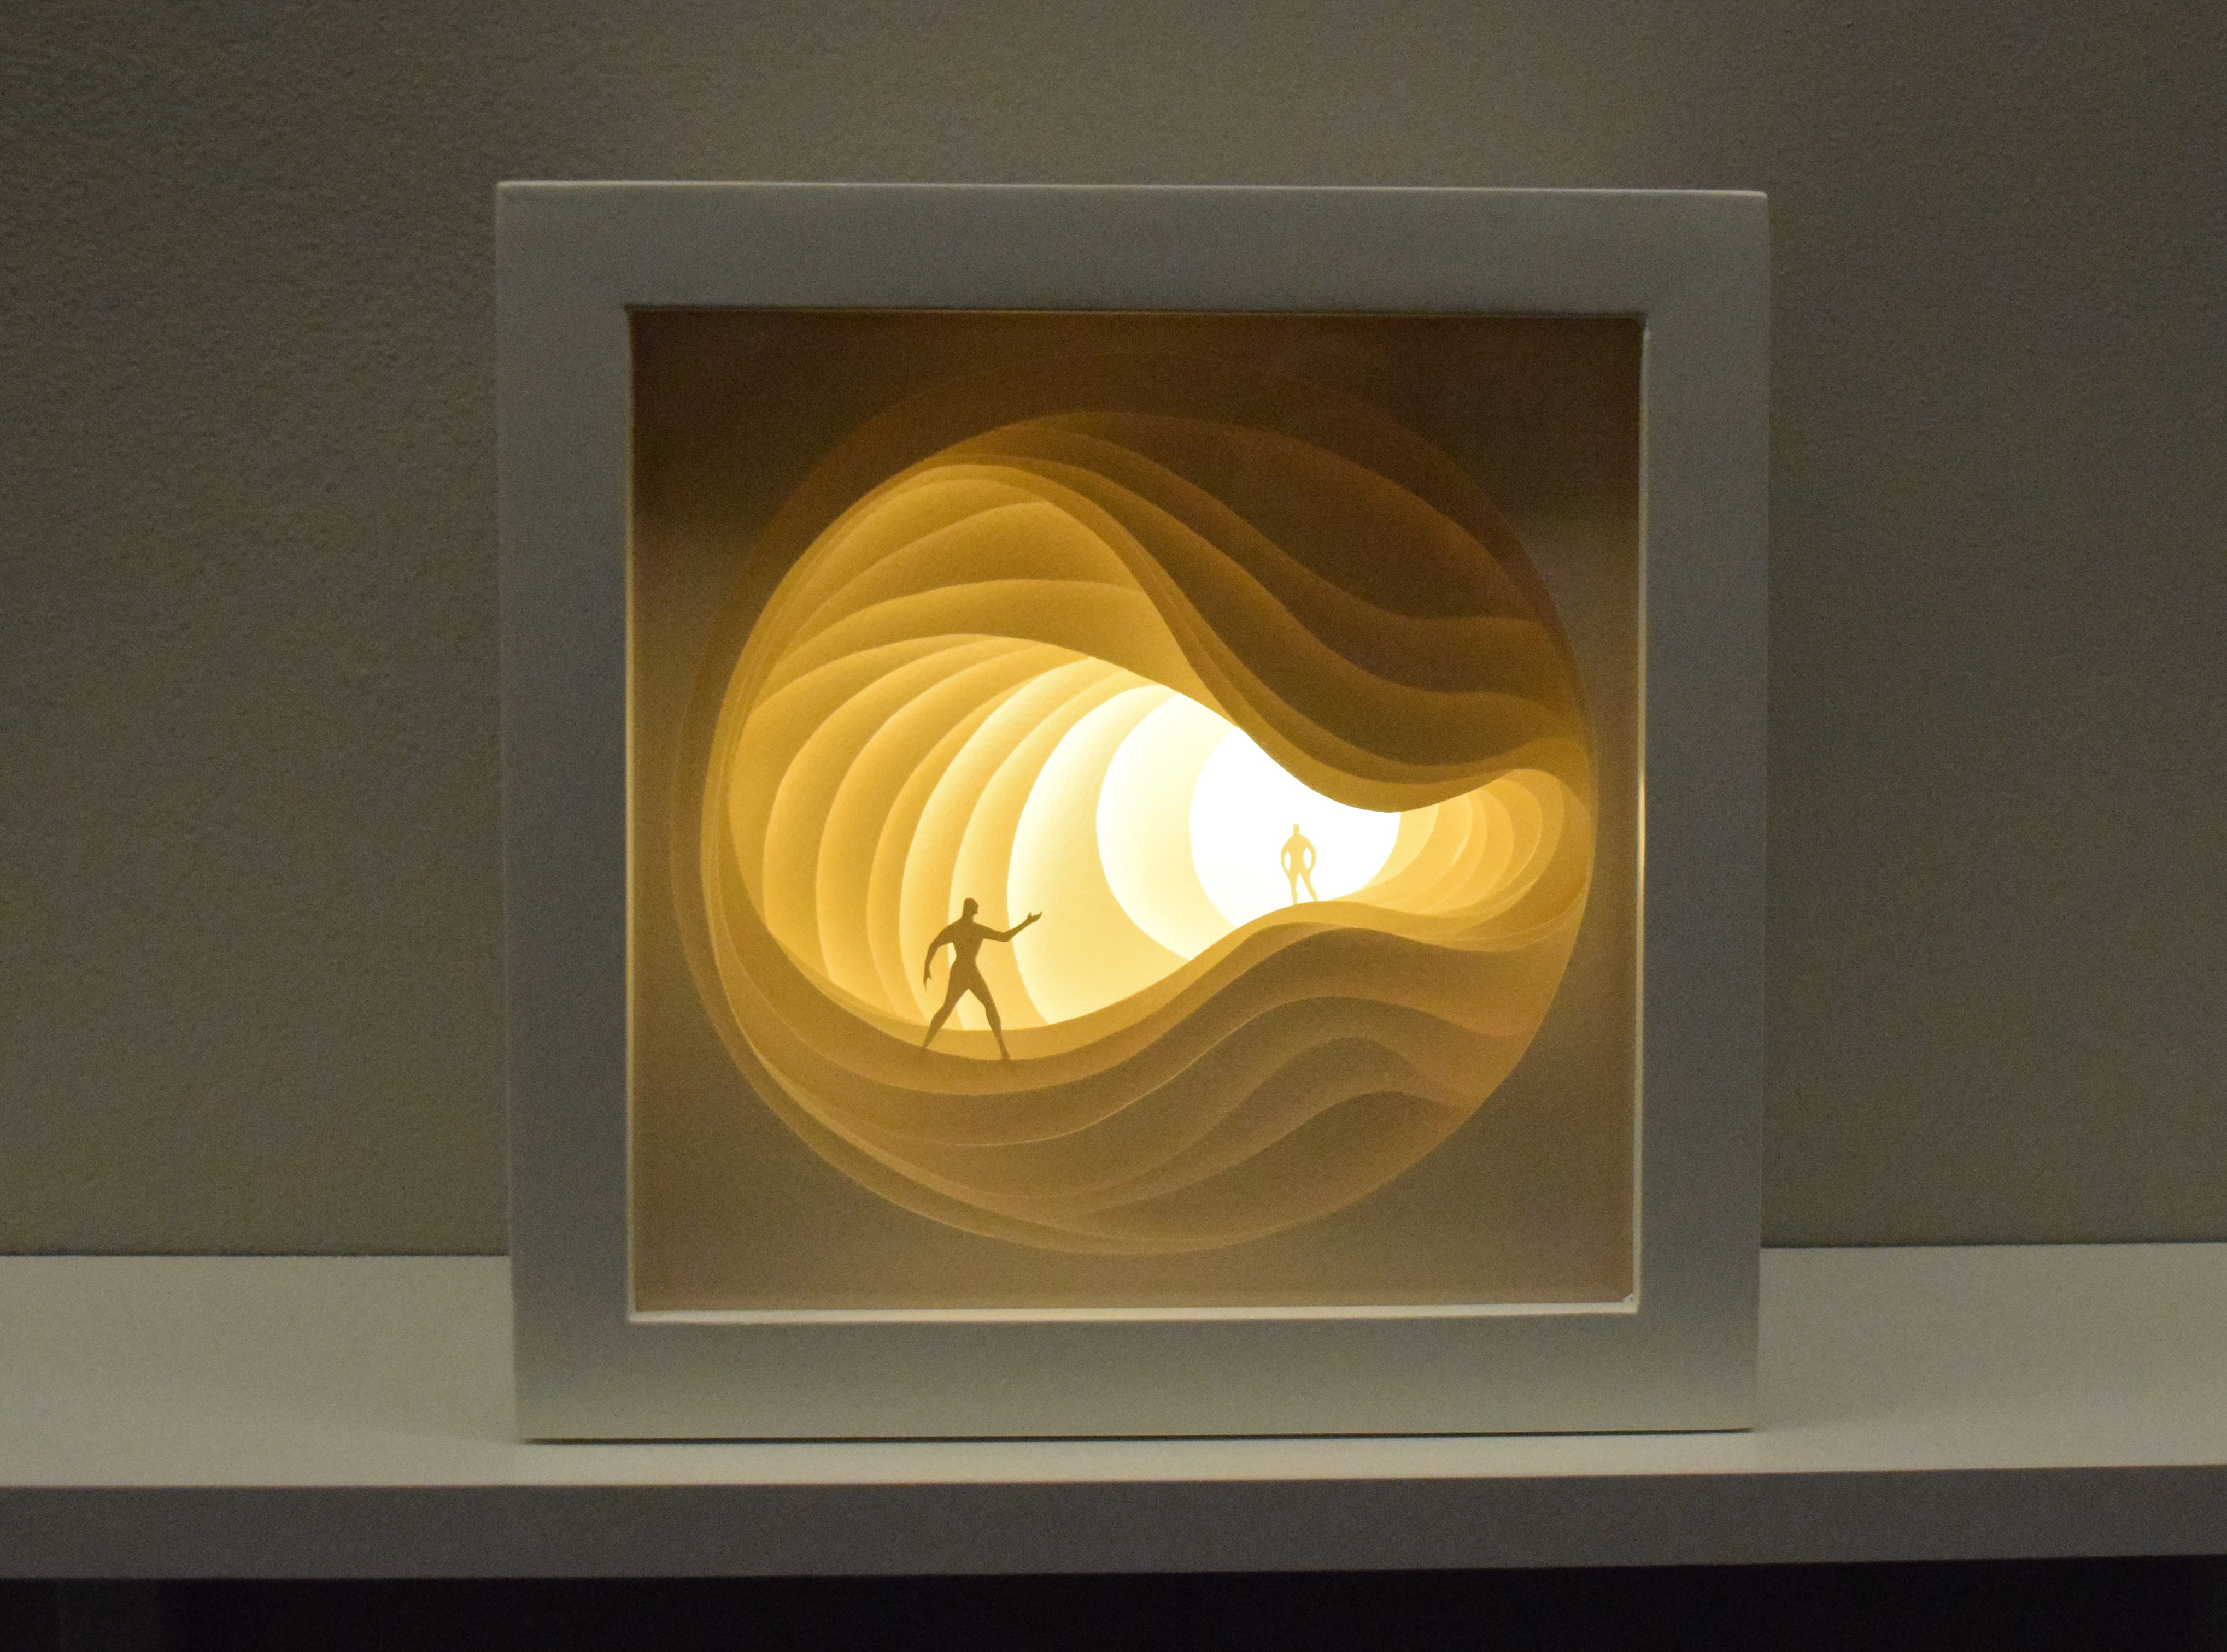 """""""Light by the Forest"""" is a new exhibit on display at the Alexandria Museum of Art through Feb. 16, 2018. The exhibit features the art work of husband and wife artists Hari and Deepti of India. The work consists of cut paper shadow boxes that tell stories. Hari and Deepti are set to travel to Alexandria from India. They will be artists in residence at the museum from Nov. 29-Dec. 11. They will create an installation piece and conduct a workshop for adults in shadow sculpting from 10 a.m. to 3 p.m. on Dec. 1. Visitors are also encouraged to create their own paper light box compostion with figurines provided. They are encouraged to take a photo and upload it to the Alexandria Museum of Art's Facebook page."""